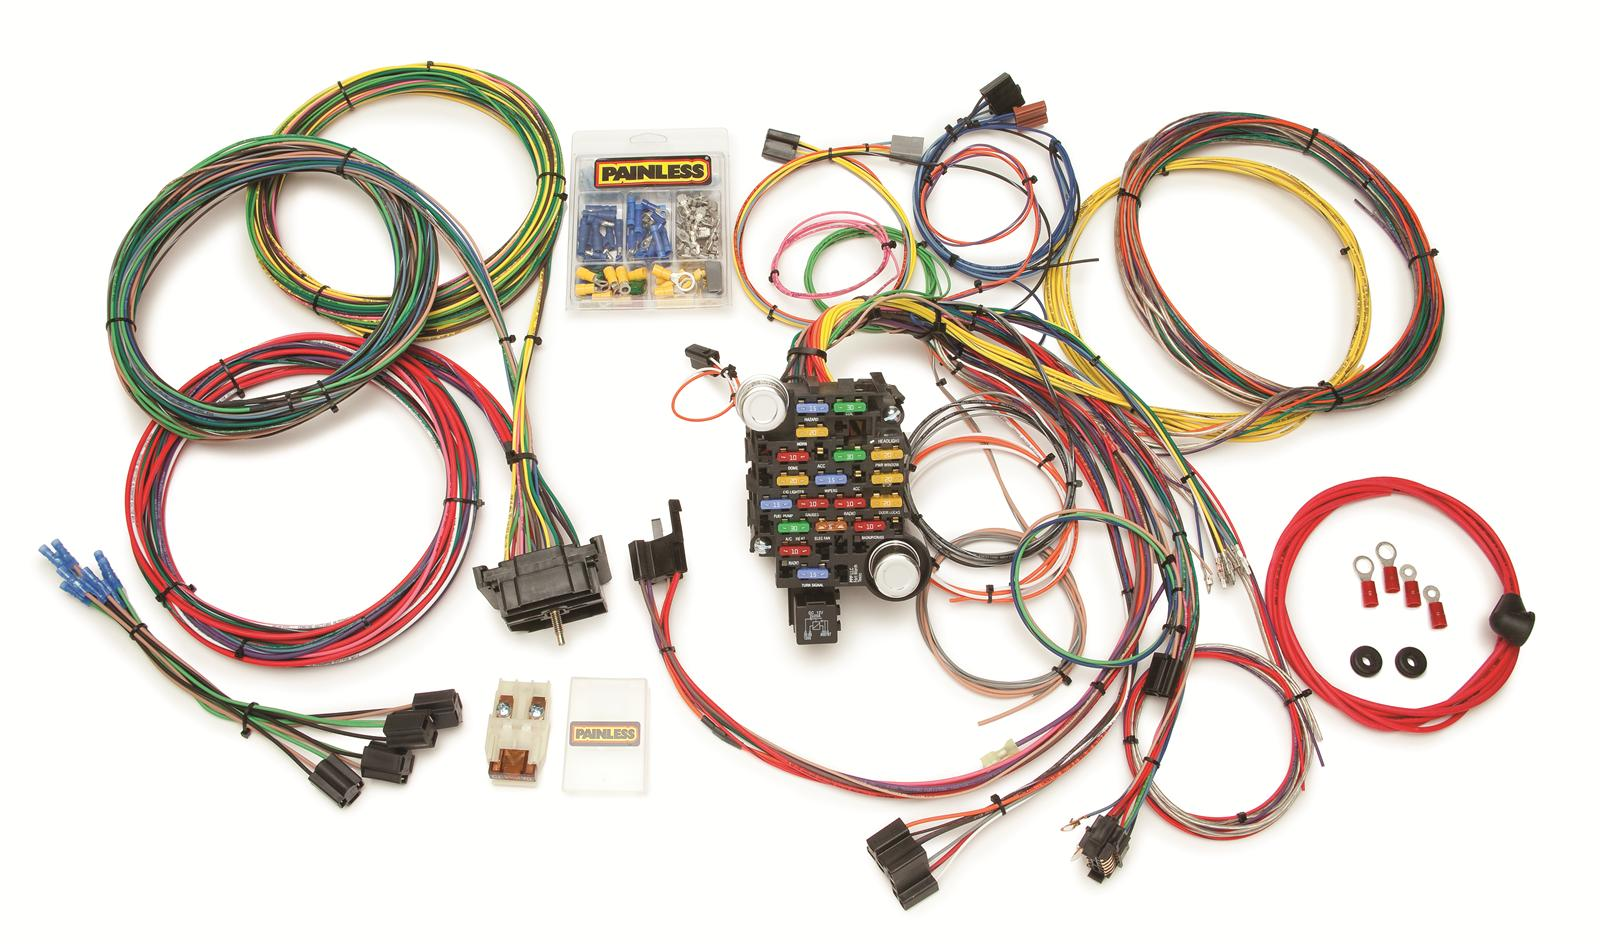 prf 10206_xl painless performance gmc chevy truck harnesses 10206 free truck wiring harness at gsmportal.co